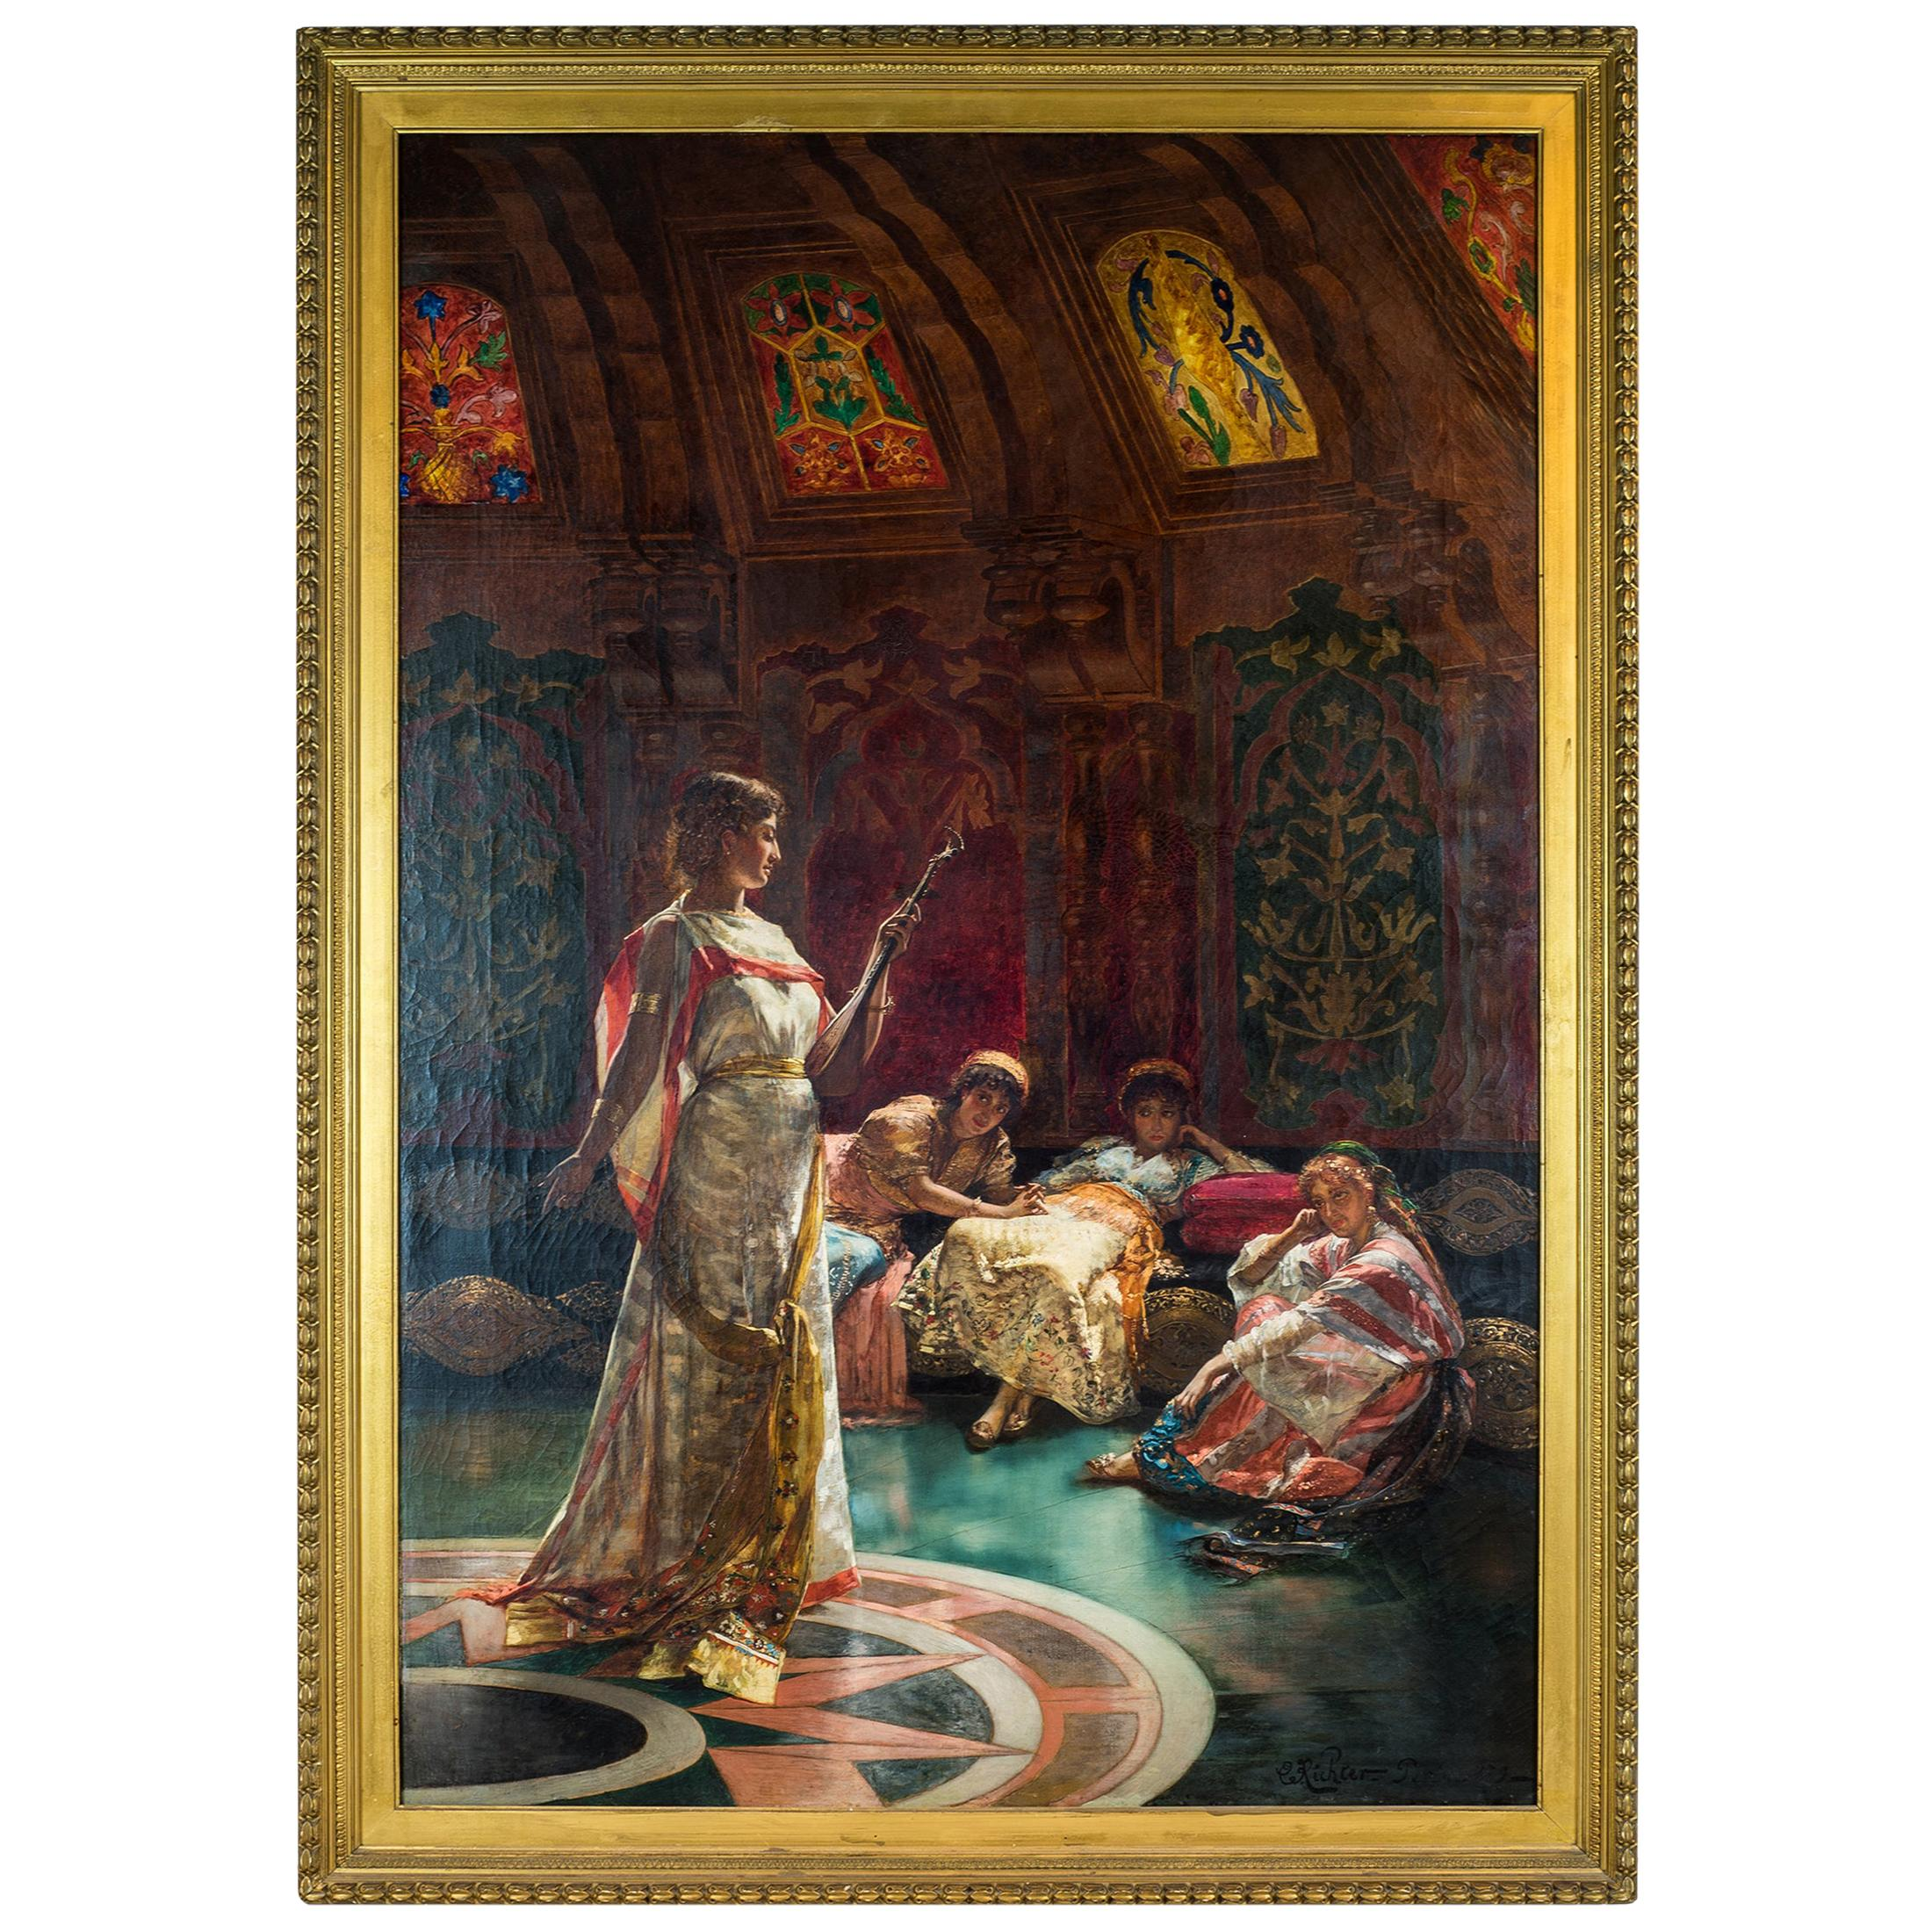 19th Century Painting Depicting Four Concubines in the Harem by Edouard Richter